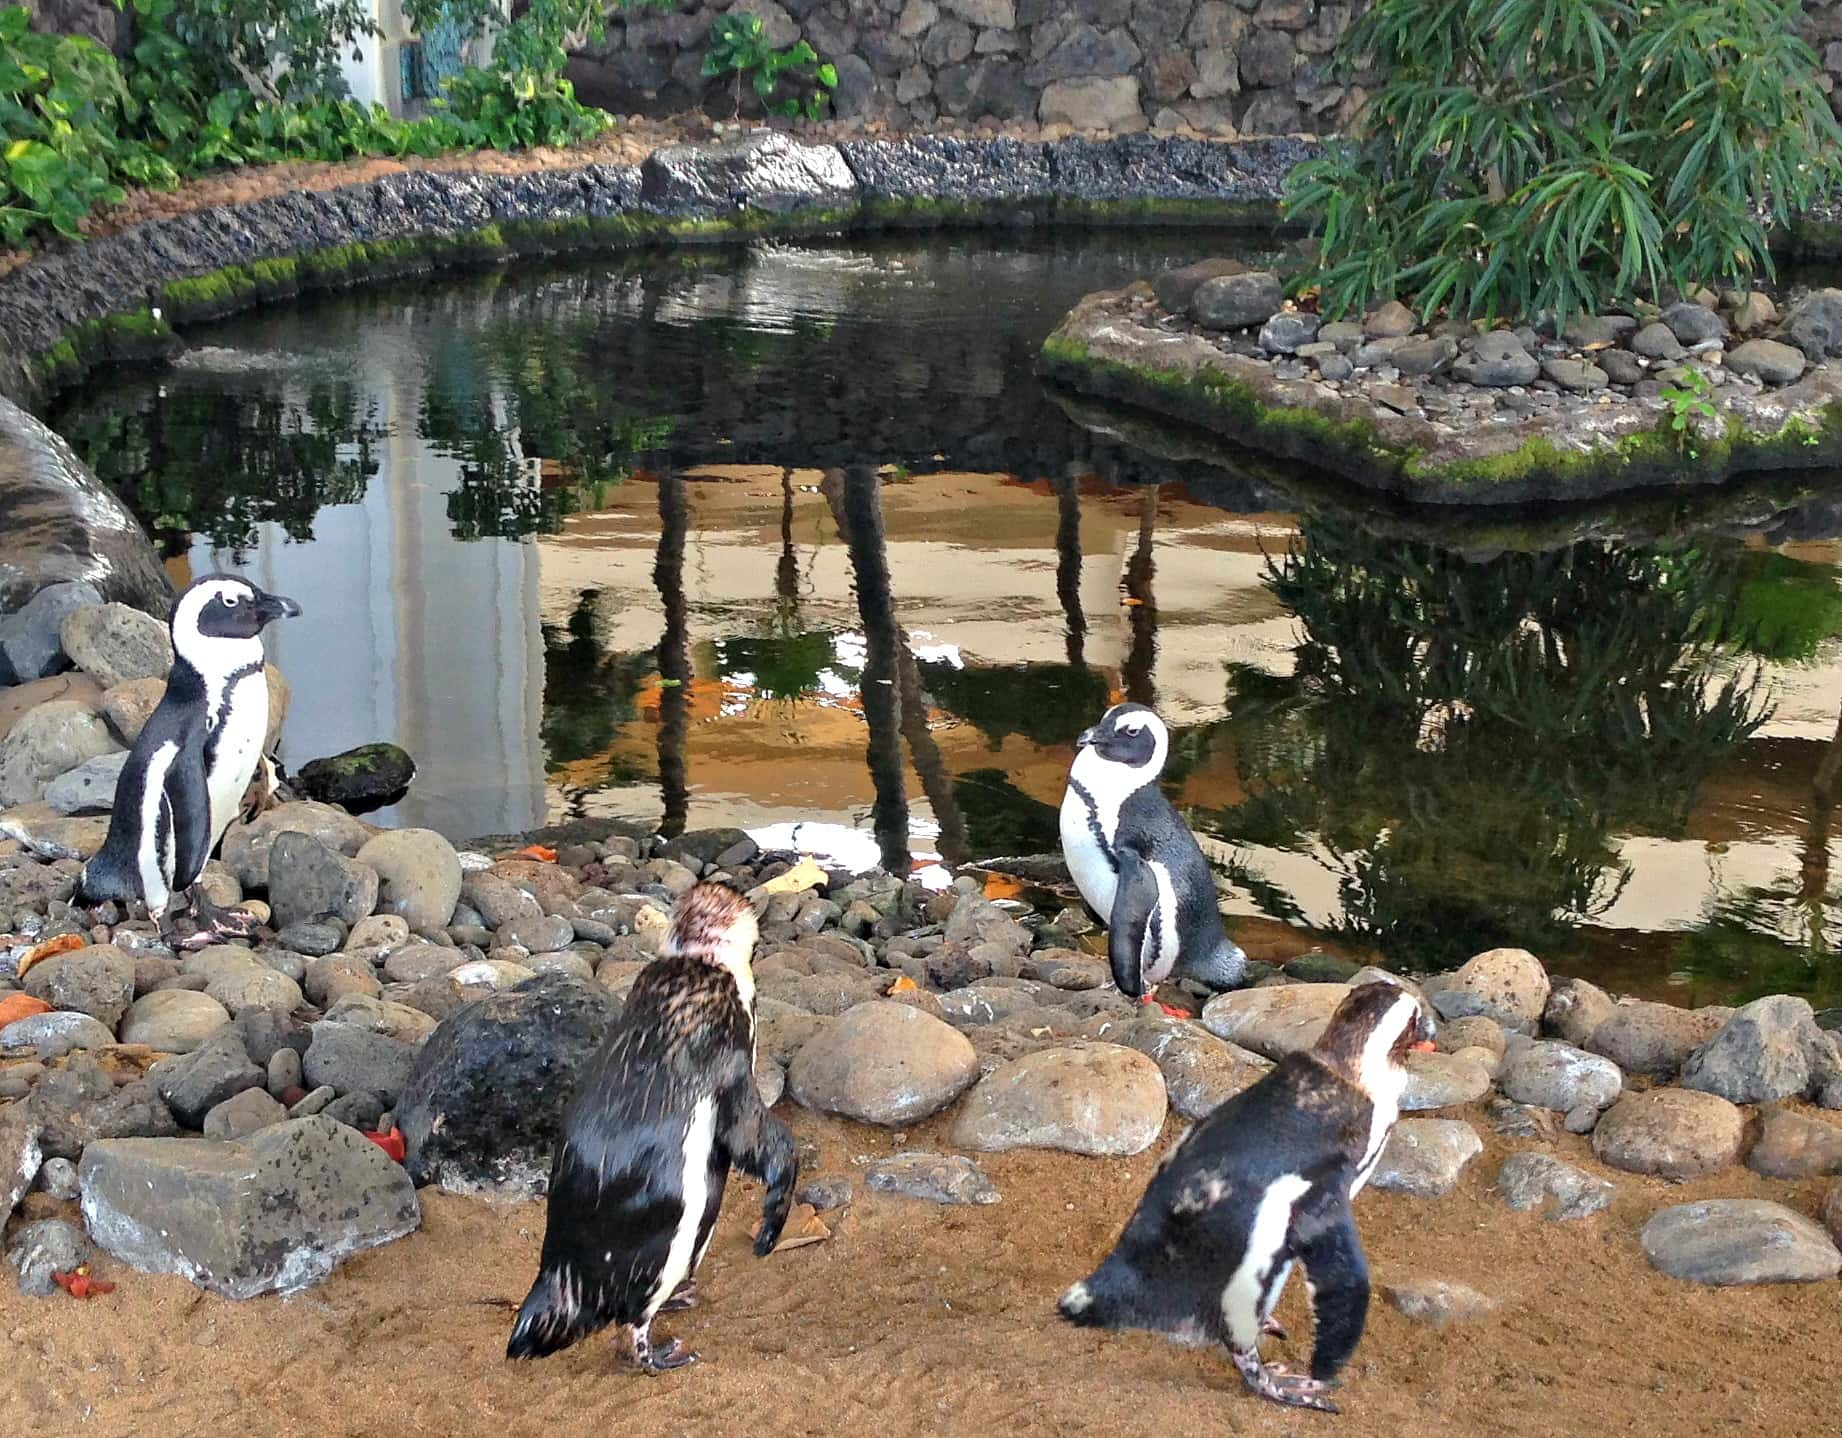 Warm weather penguins on parade at Hyatt Regency Maui with kids